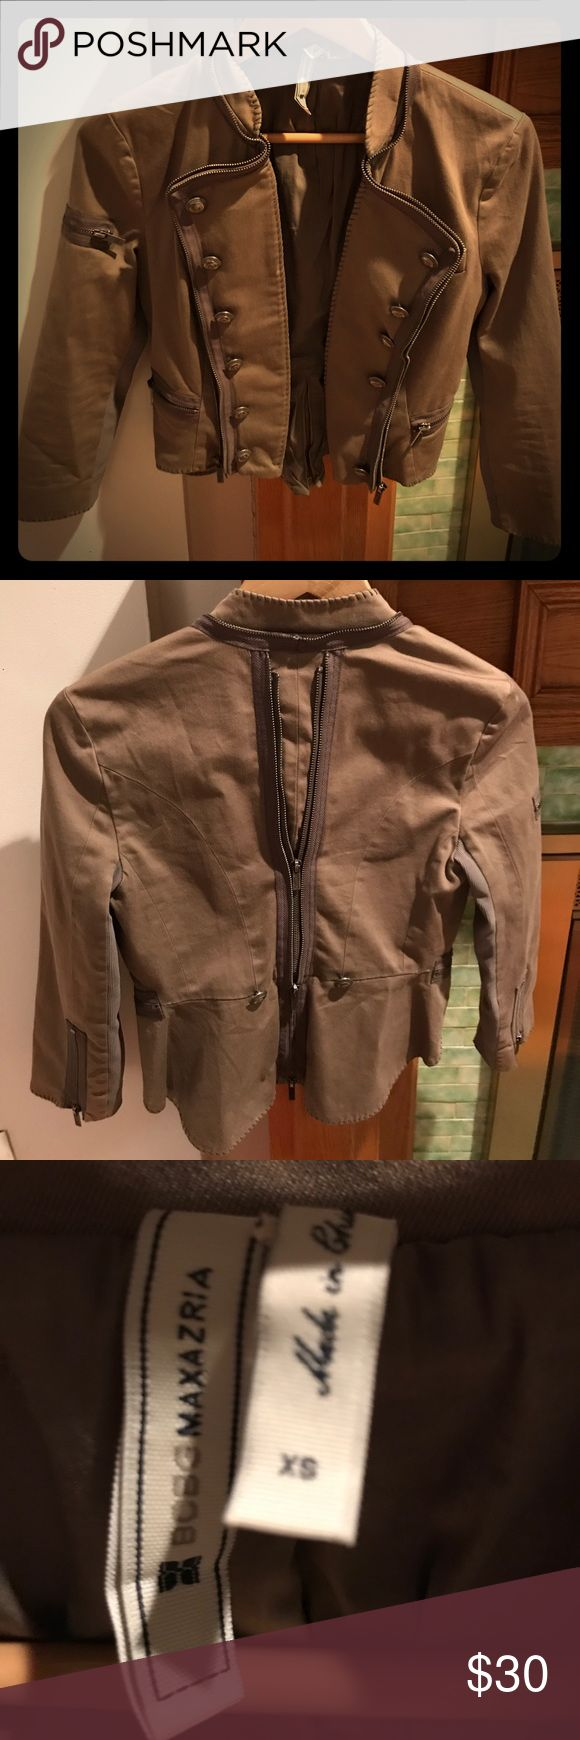 BCBG Max Azria Long Sleeve Military Jacket BCBG Max Azria Long Sleeve Military Jacket. Army green. Size xs. Right lapel needs to be sewn down as it is unattached. BCBGMaxAzria Jackets & Coats Blazers